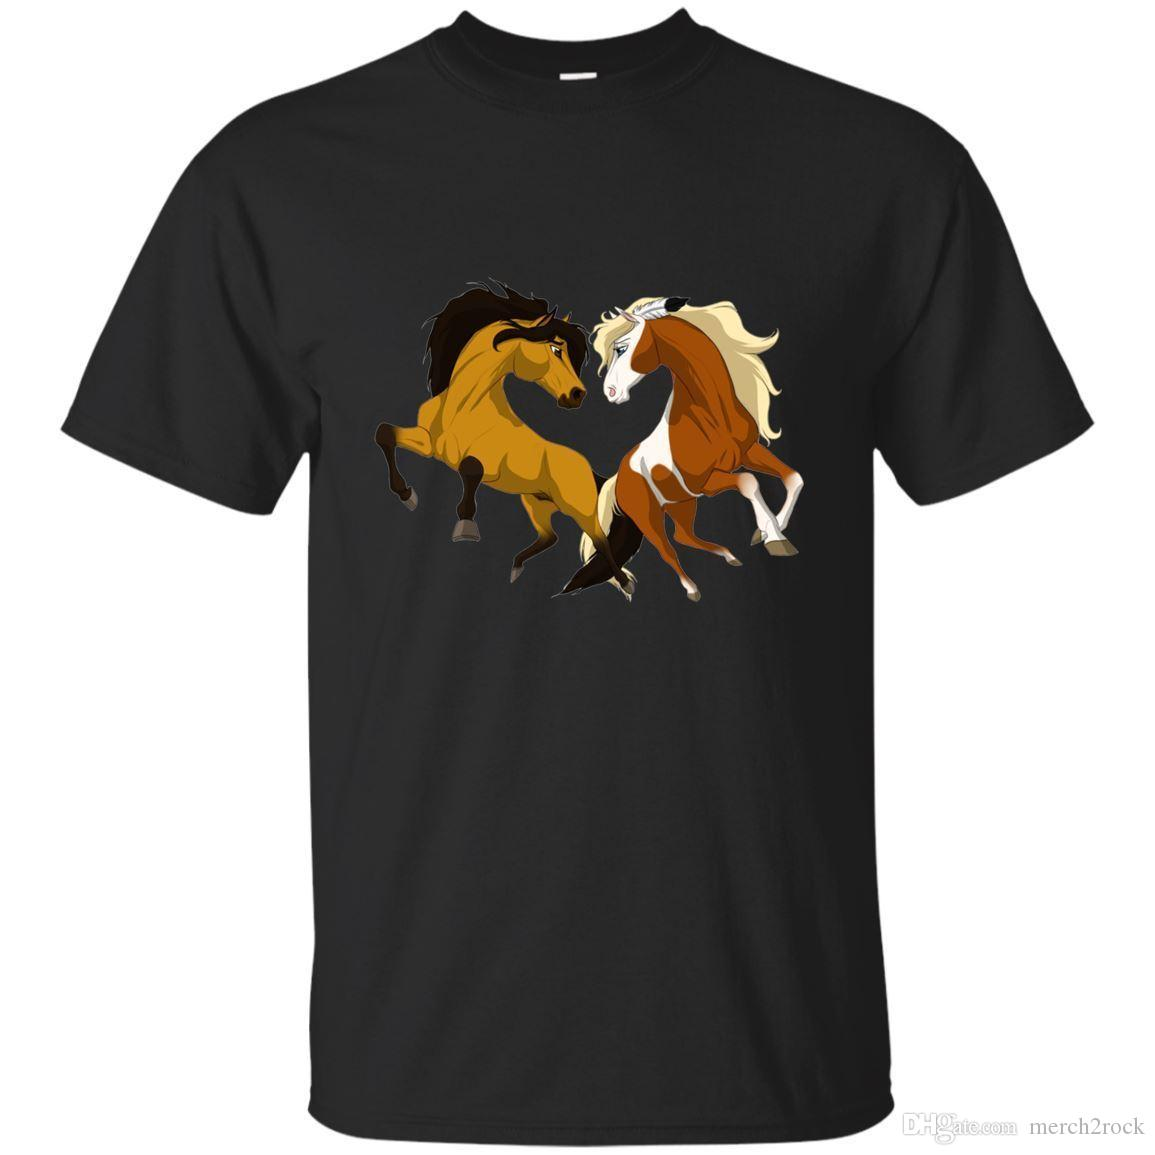 22e25097b49 Kids DreamWorks Spirit Riding Free Spirit Horse T Shirt Black, Navy Men T  Shirts Only Awesome Tee From Merch2rock, $10.95| DHgate.Com